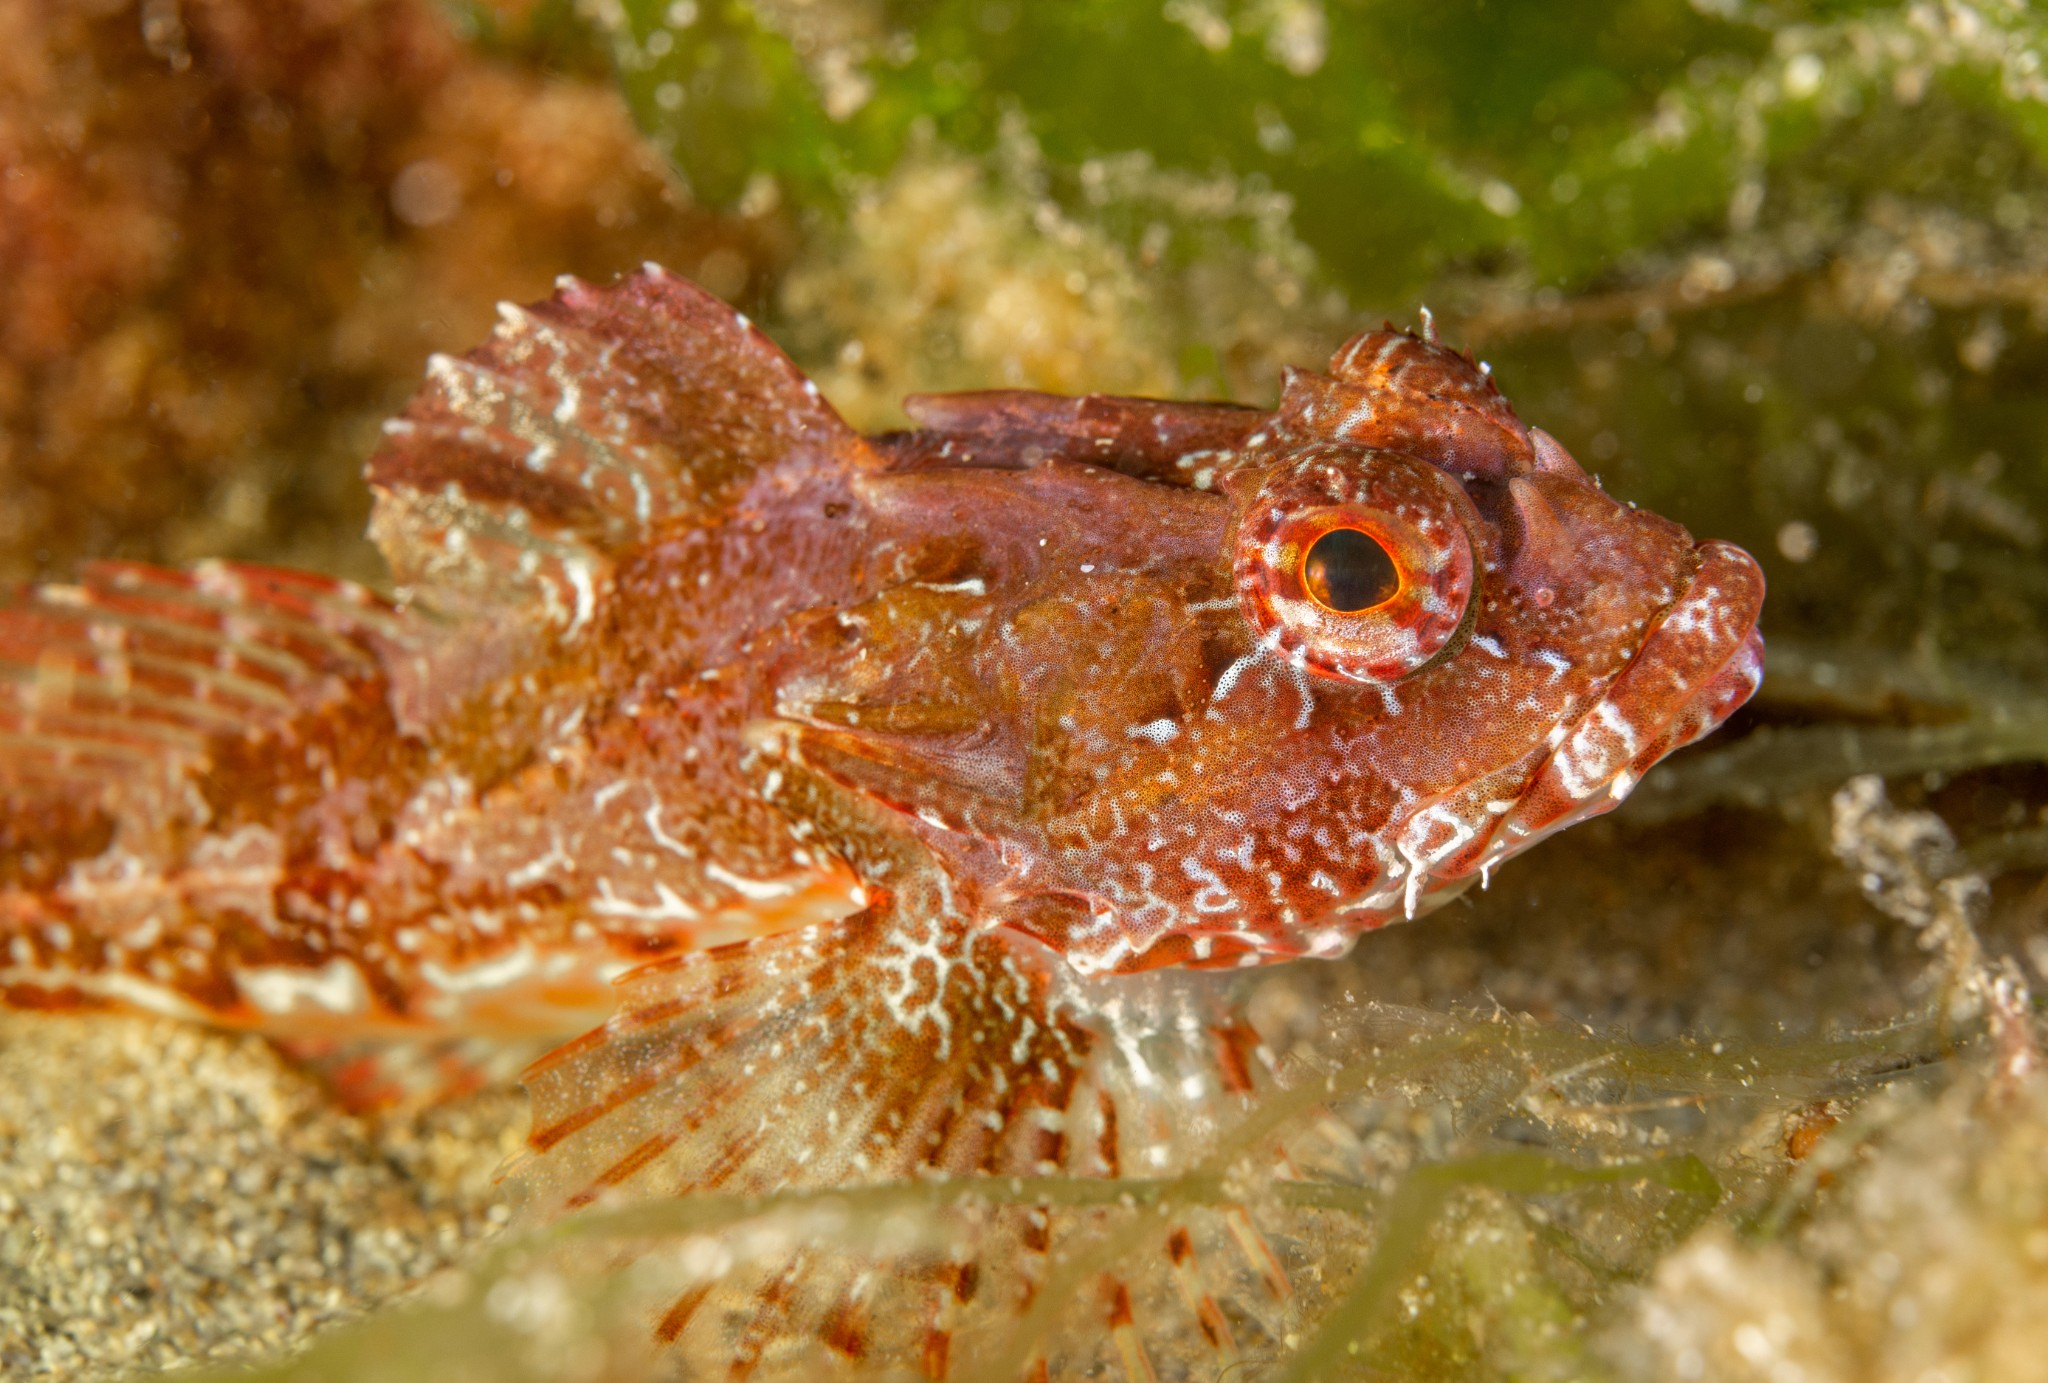 Long-spined scorpion fish in Orkney - image by Raymond Besant